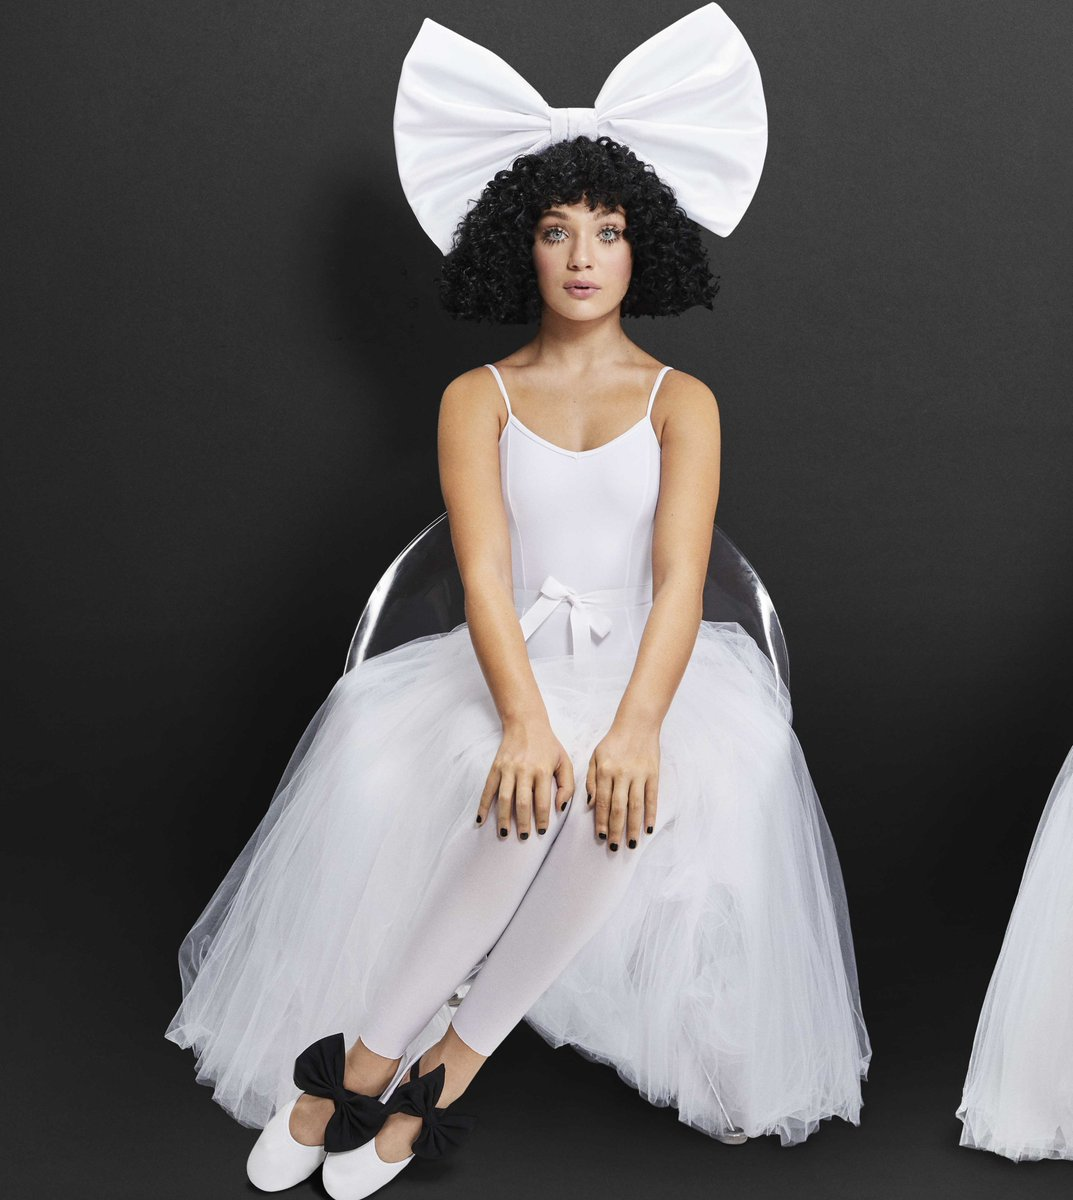 Repetto by Sia - out now! https://t.co/OuiEQupH3G ???? - Team Sia https://t.co/I1FsNUoXkQ